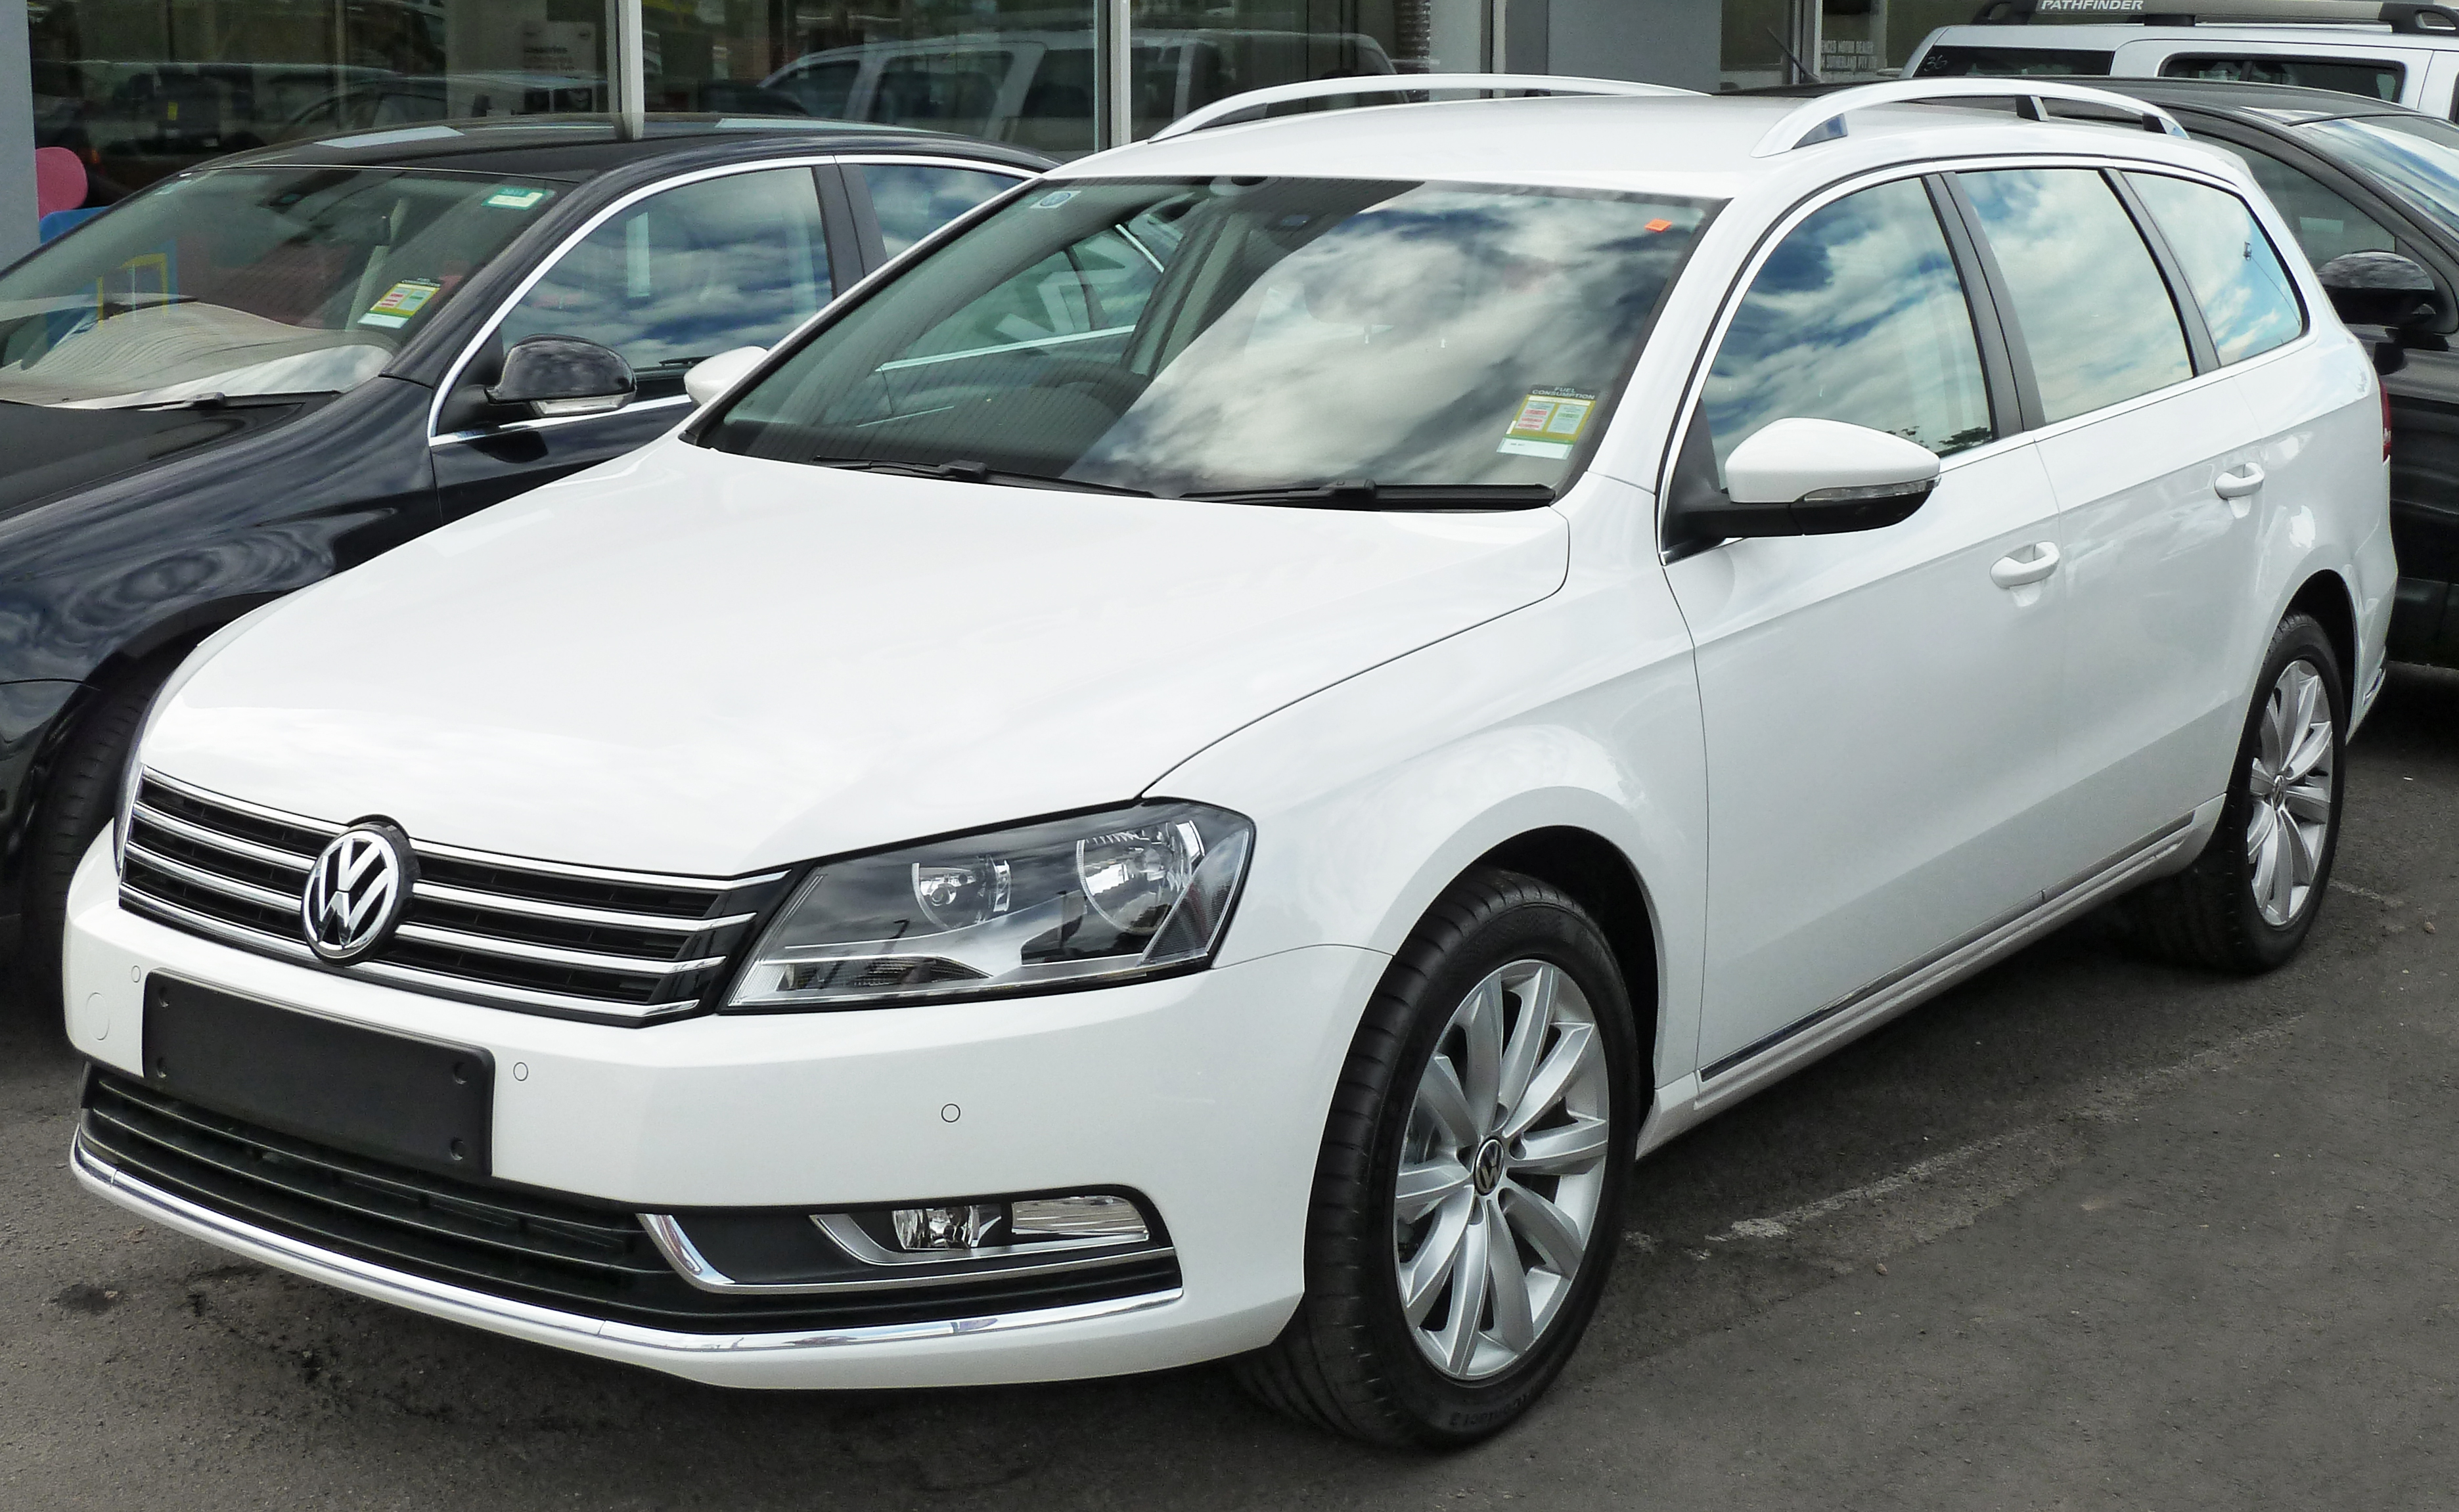 file 2011 volkswagen passat 3c 118tsi station wagon. Black Bedroom Furniture Sets. Home Design Ideas